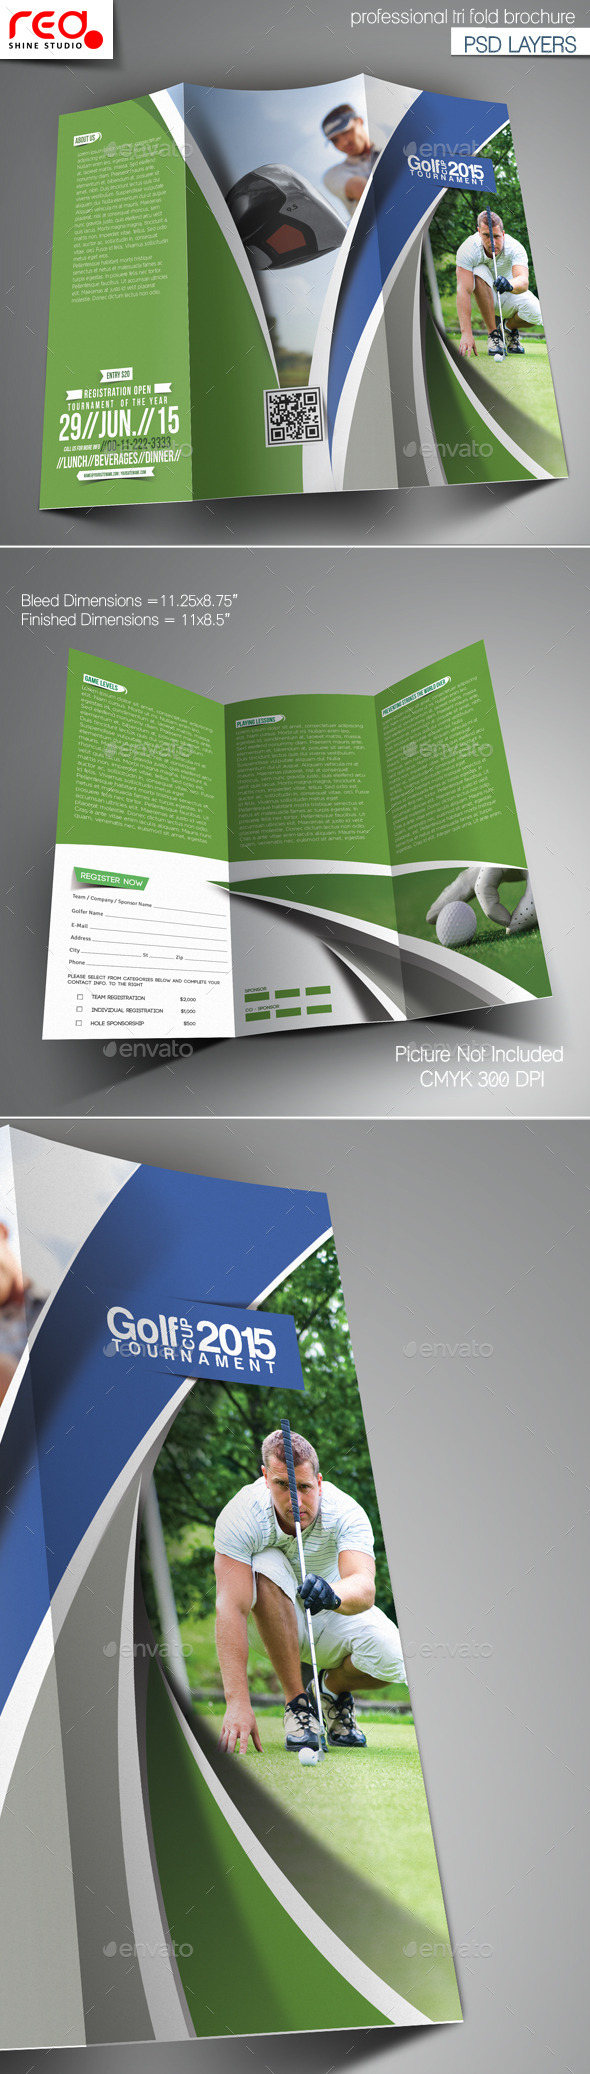 GraphicRiver Golf Cup Tournament Trifold Brochure Template 4 11787287